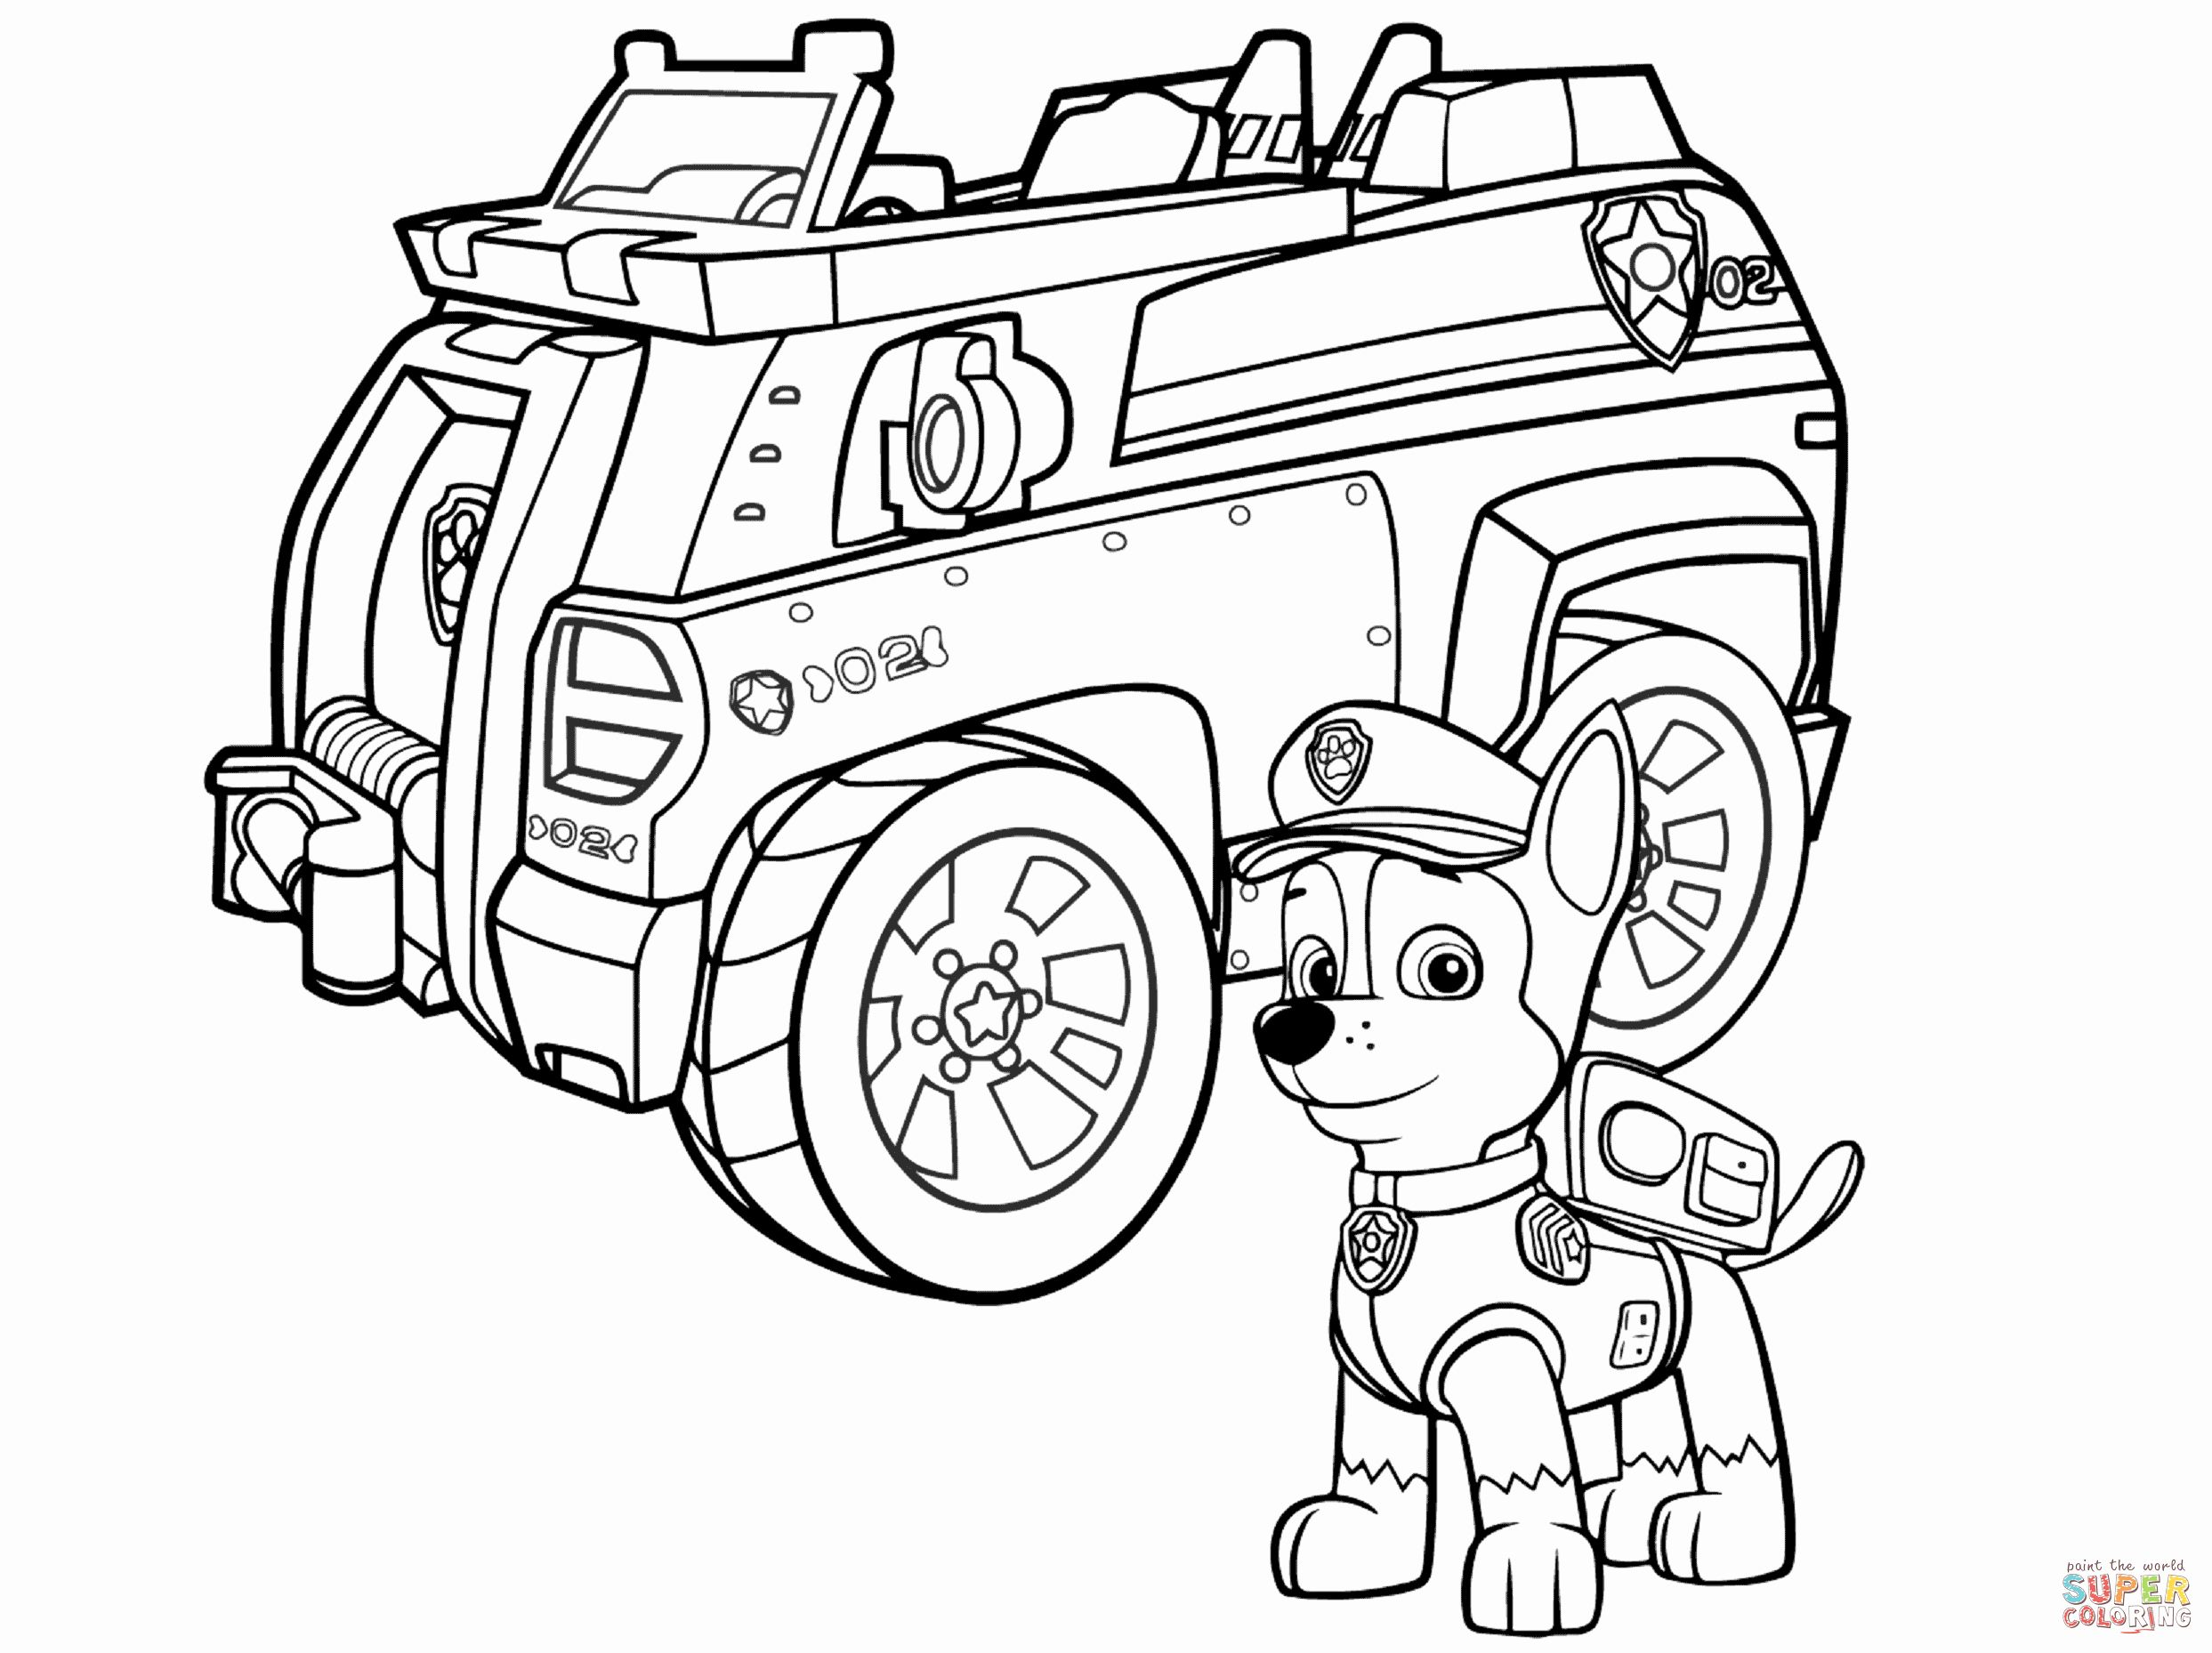 Police Car Coloring Pages Awesome Paw Patrol Chase Police Car Coloring Page Paw Patrol Coloring Pages Paw Patrol Coloring Truck Coloring Pages